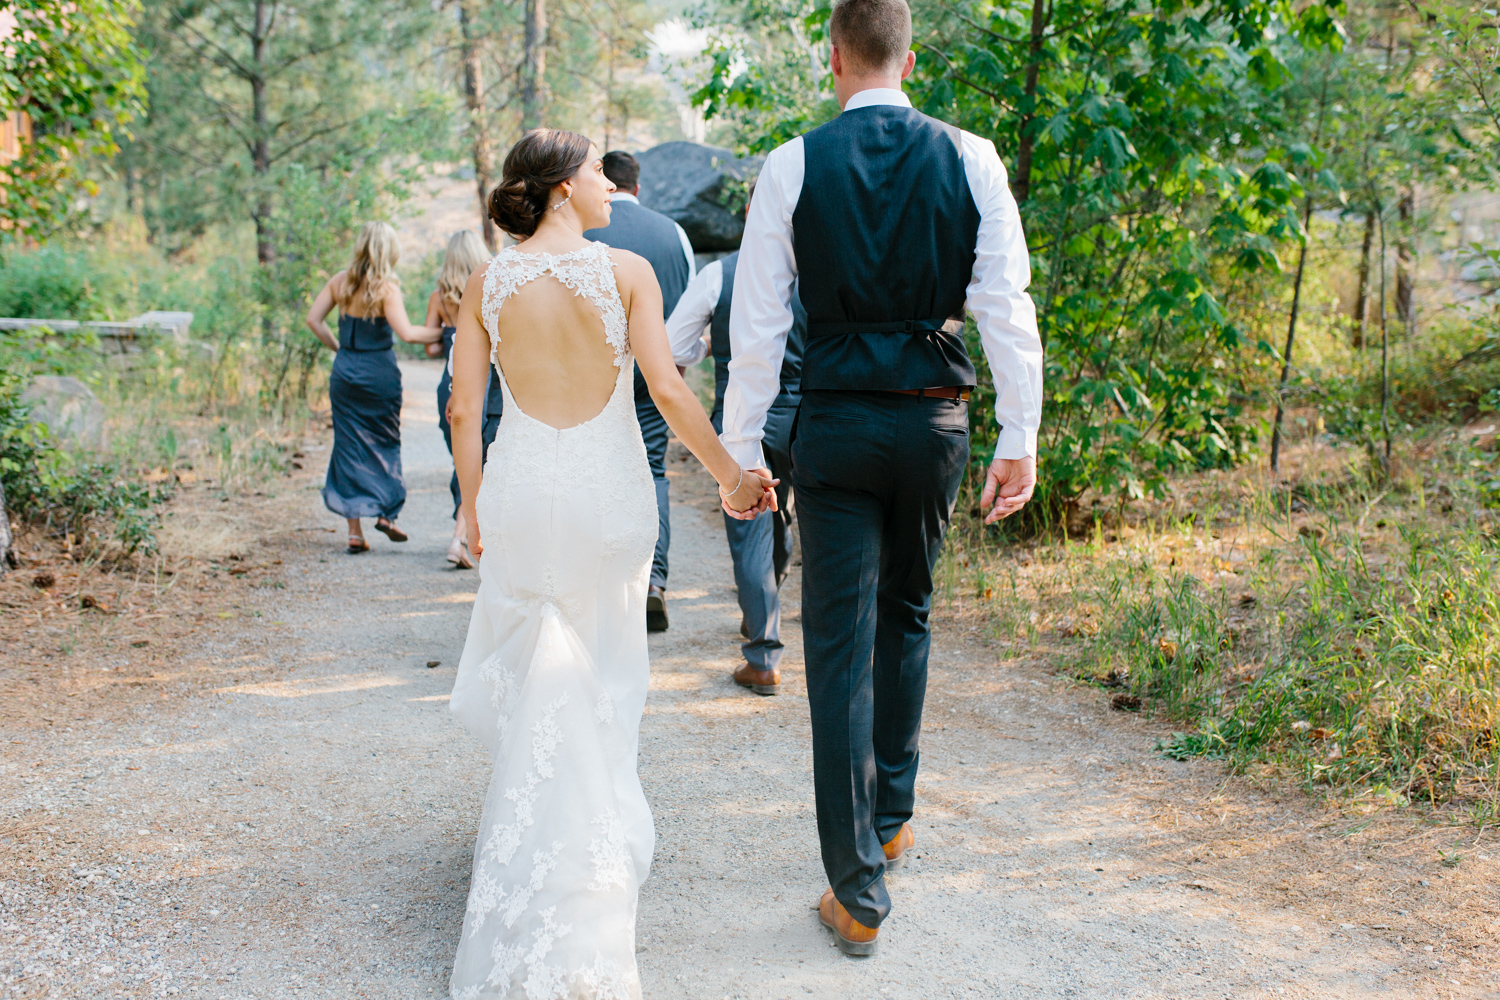 Grey and White Wedding in the Mountains of Leavenworth, Washington | Sleeping Lady | Classic and Timeless Wedding | VSCO | Sleeping Lady Wedding Reception.jpg-1323.jpg